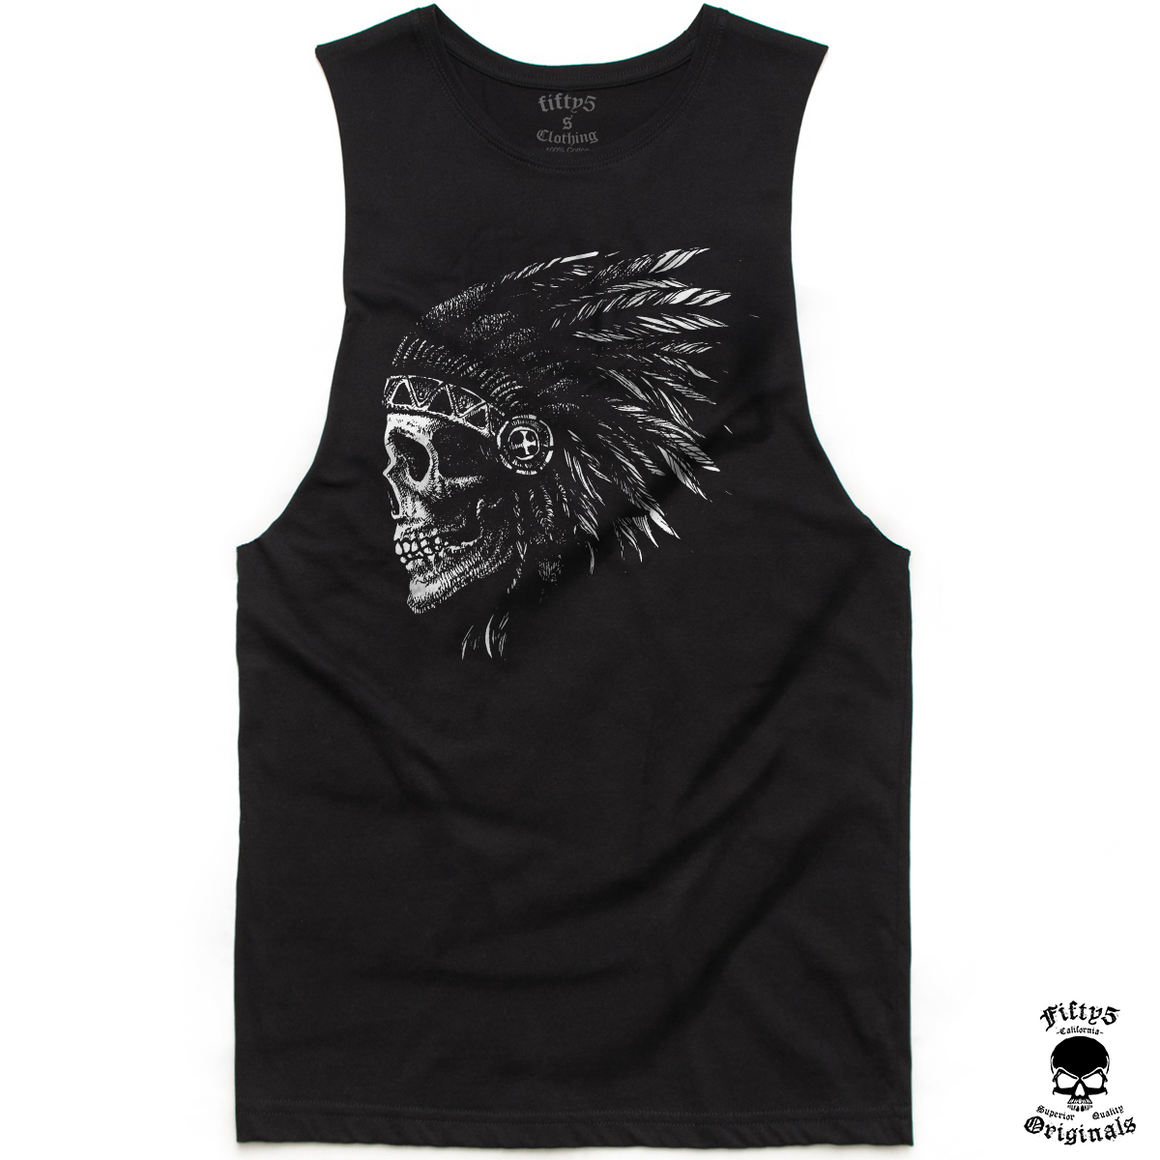 Fifty5 Native Indian Skull Mens Muscle Tank